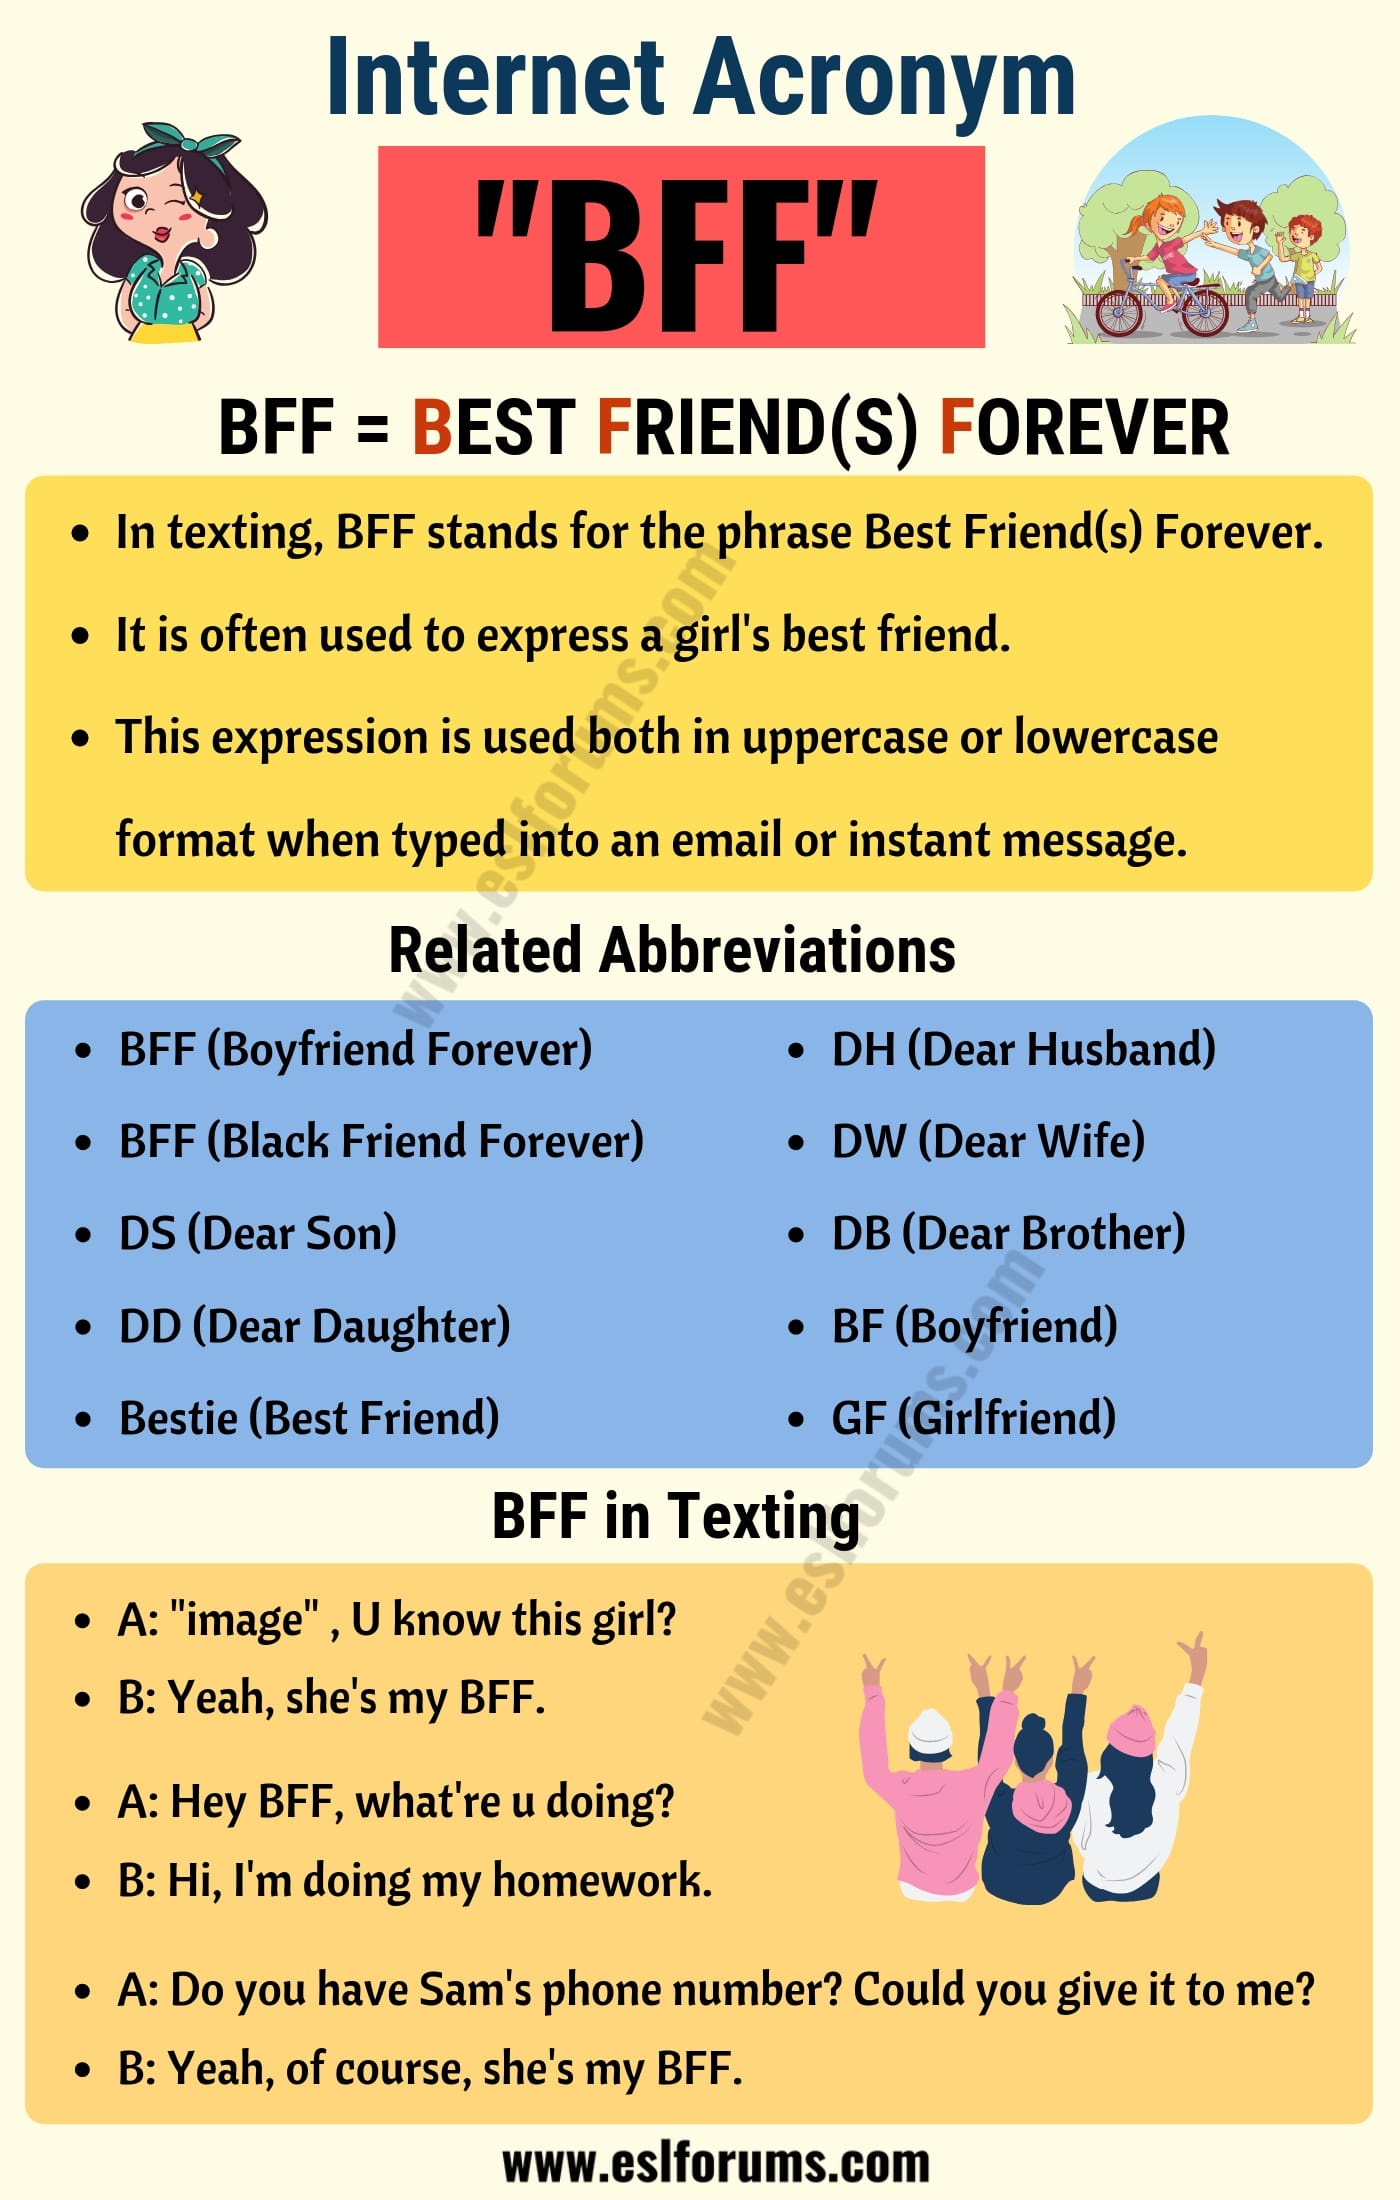 BFF: What Does BFF Stand For in Texting? (with Useful Examples)